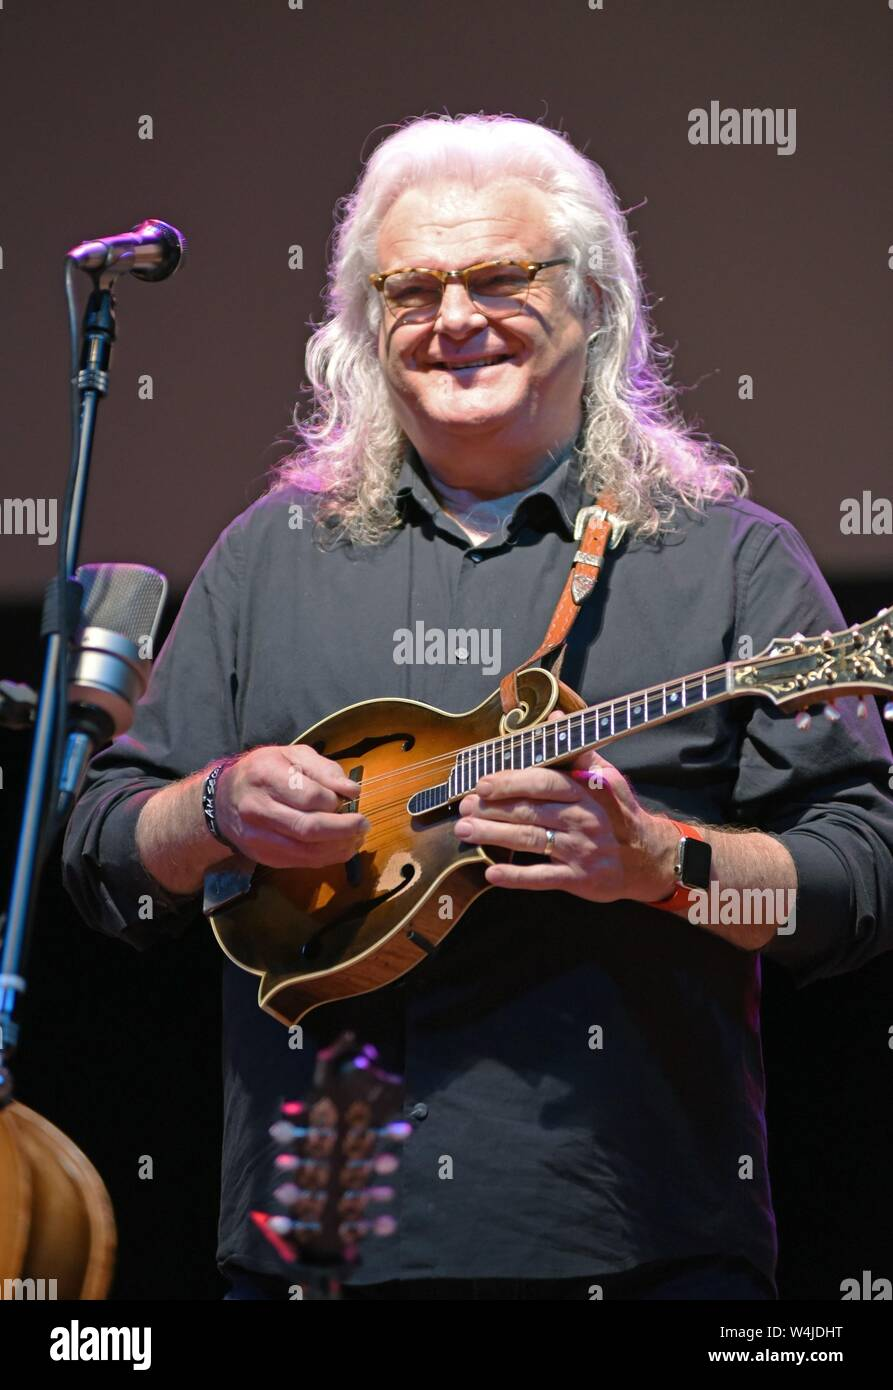 Hiawassee, GA, USA. 23rd July, 2019. Ricky Skaggs on stage for Ricky Skaggs in Concert, Georgia Mountain Fairgrounds, Hiawassee, GA July 23, 2019. Credit: Derek Storm/Everett Collection/Alamy Live News Stock Photo